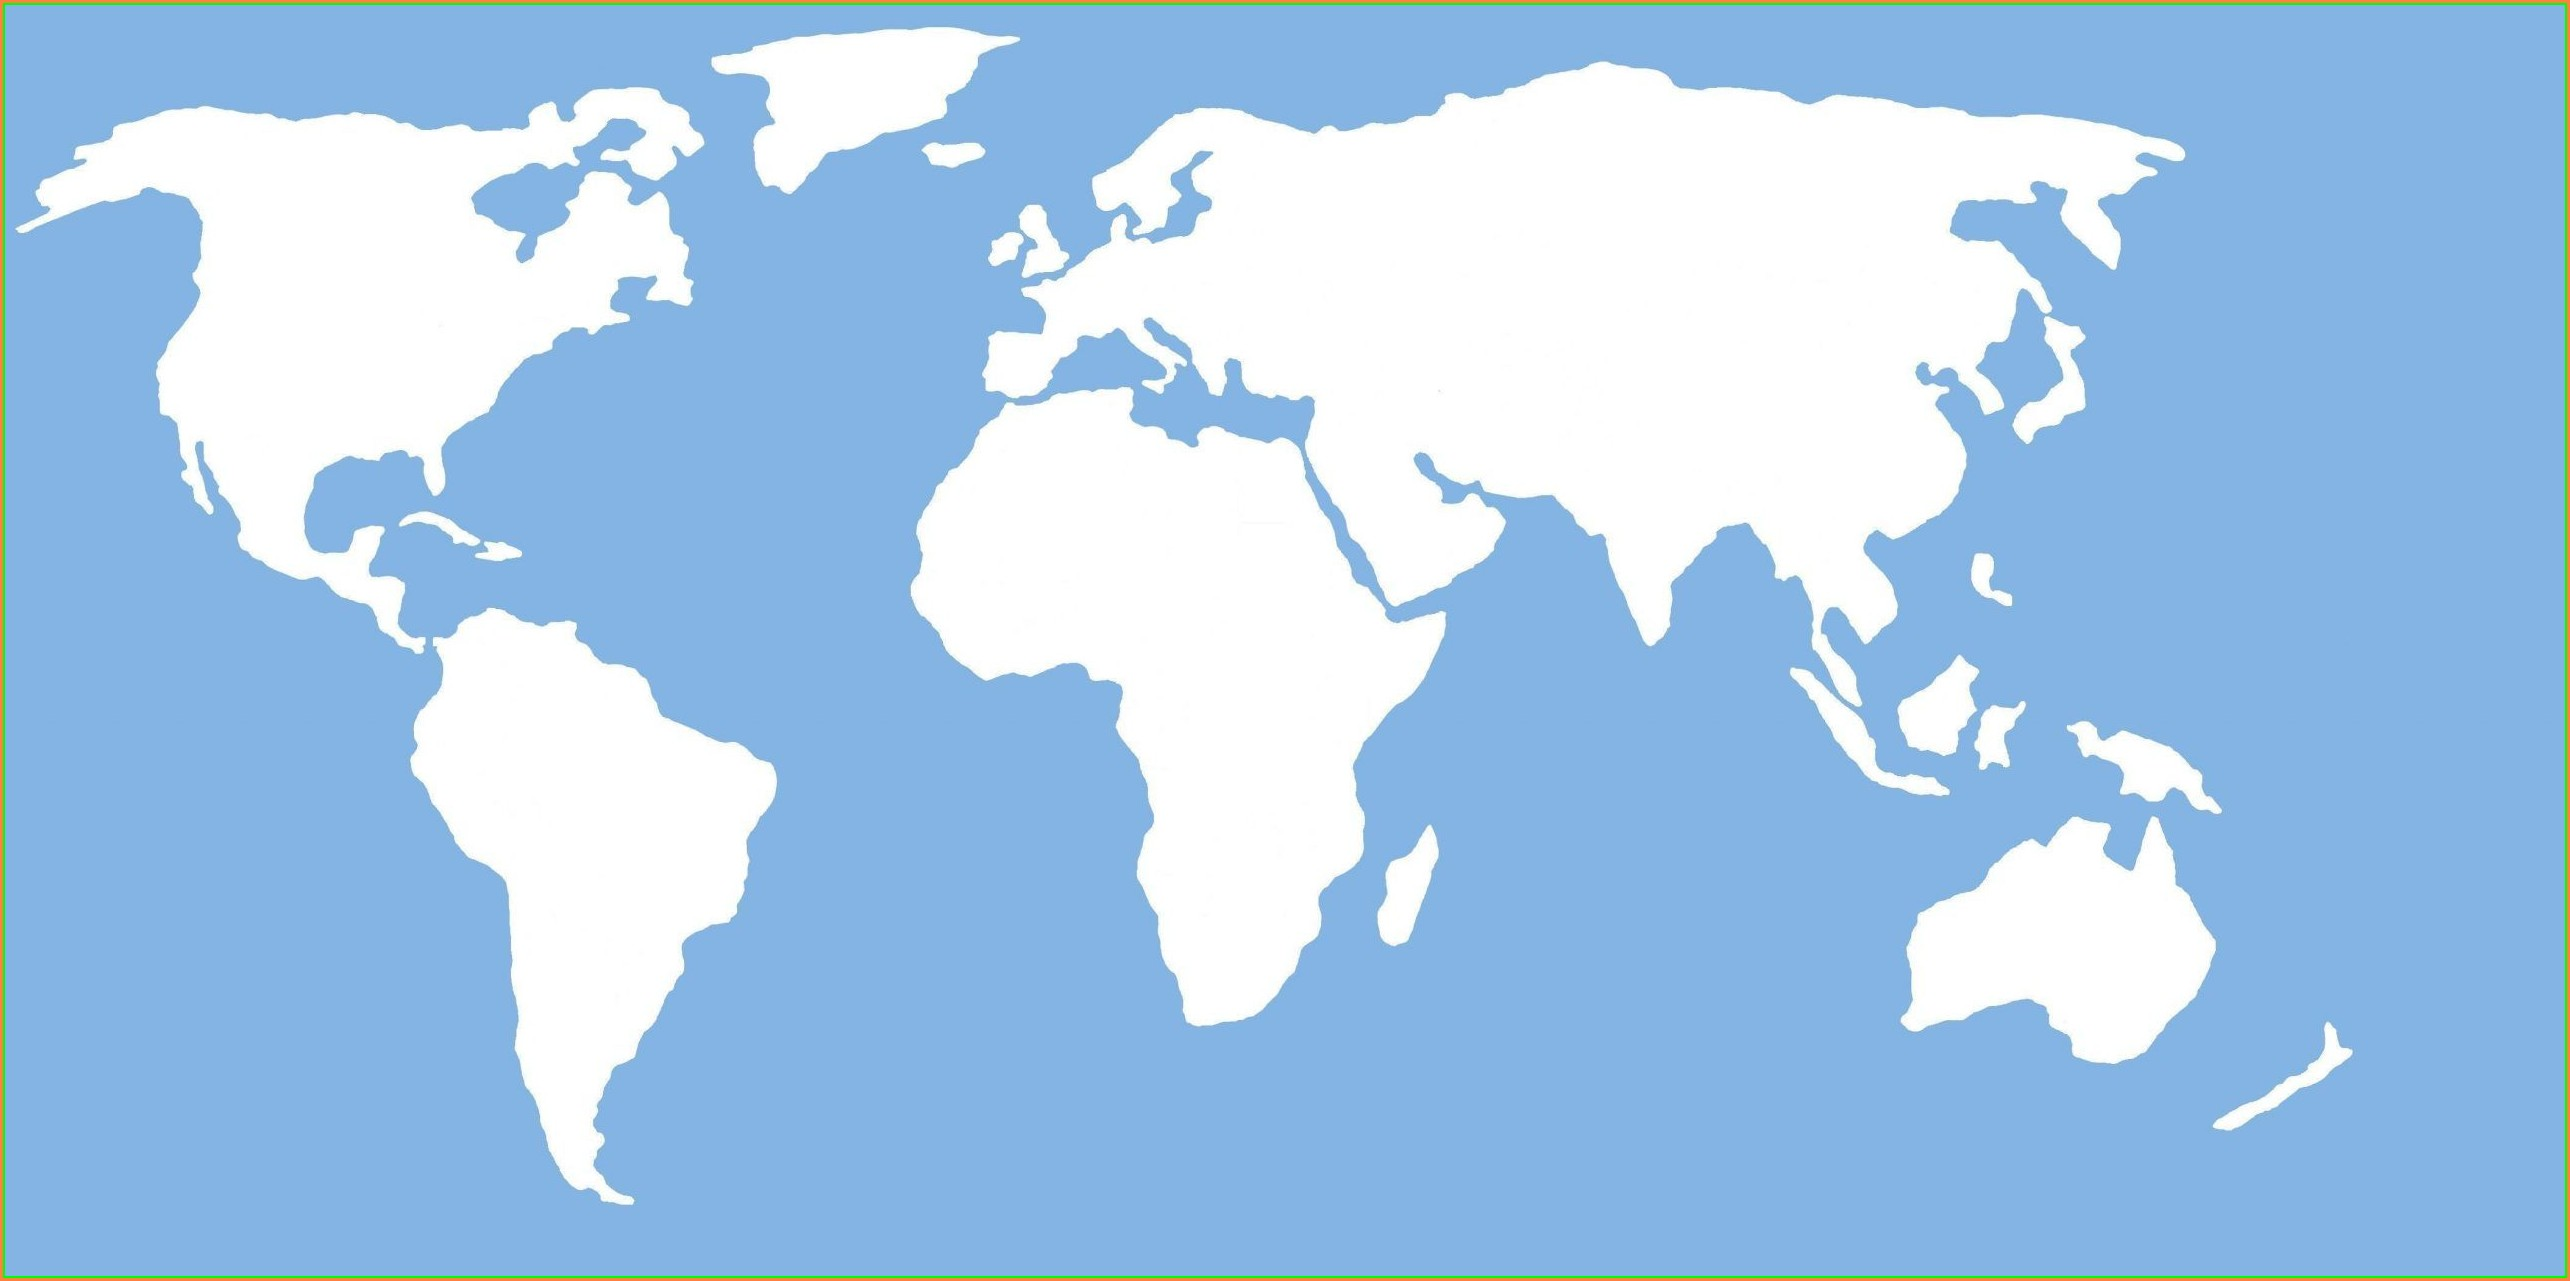 Outline Vector Simple World Map